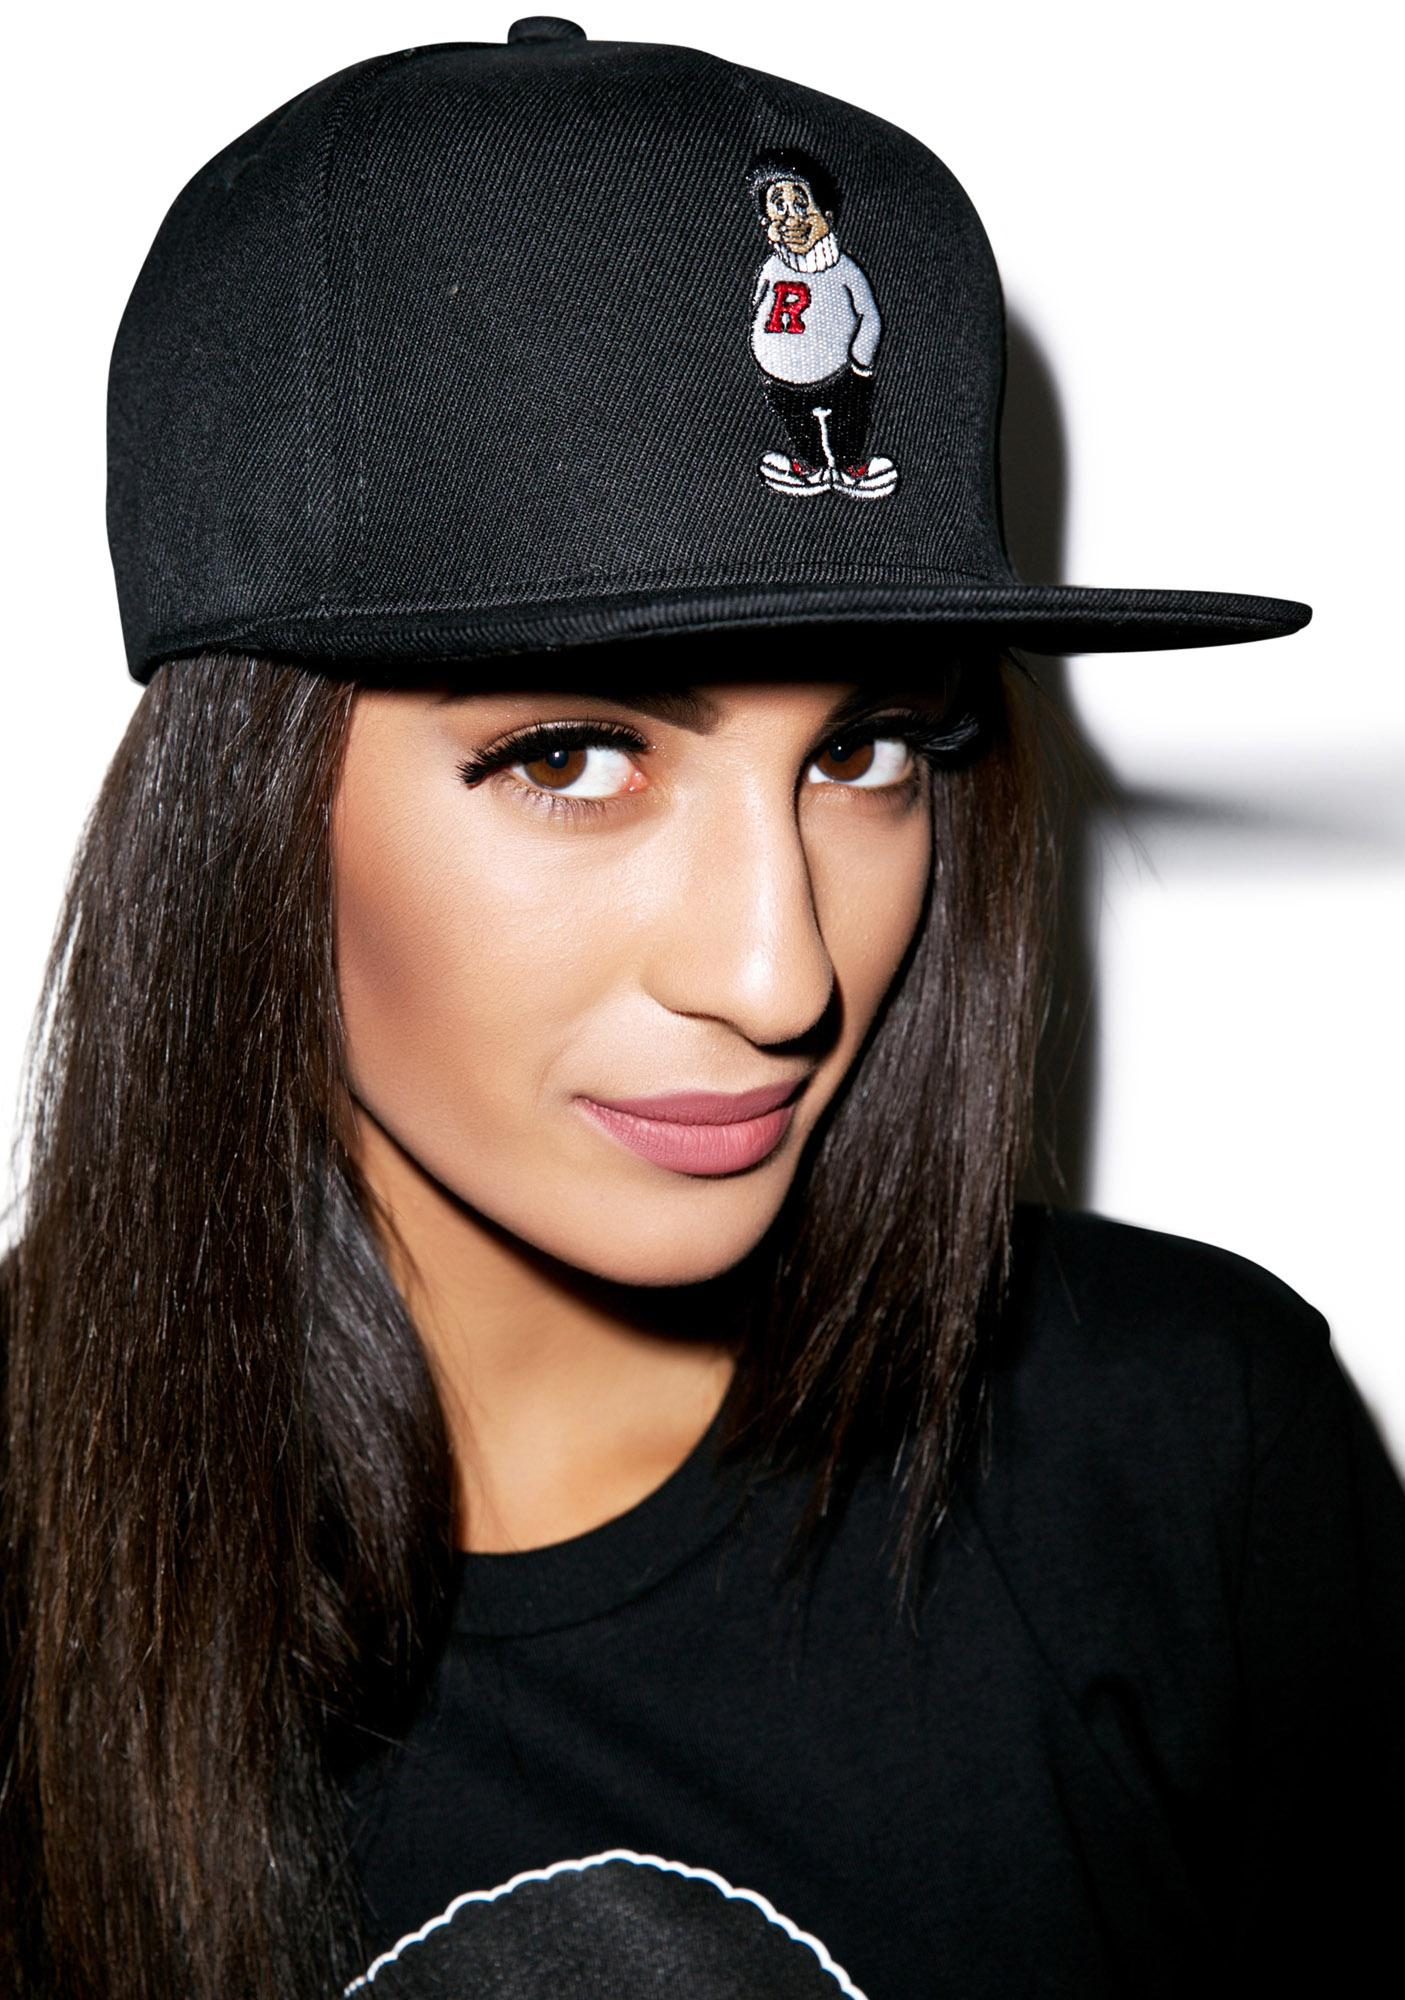 Joyrich Rich Kid Snapback